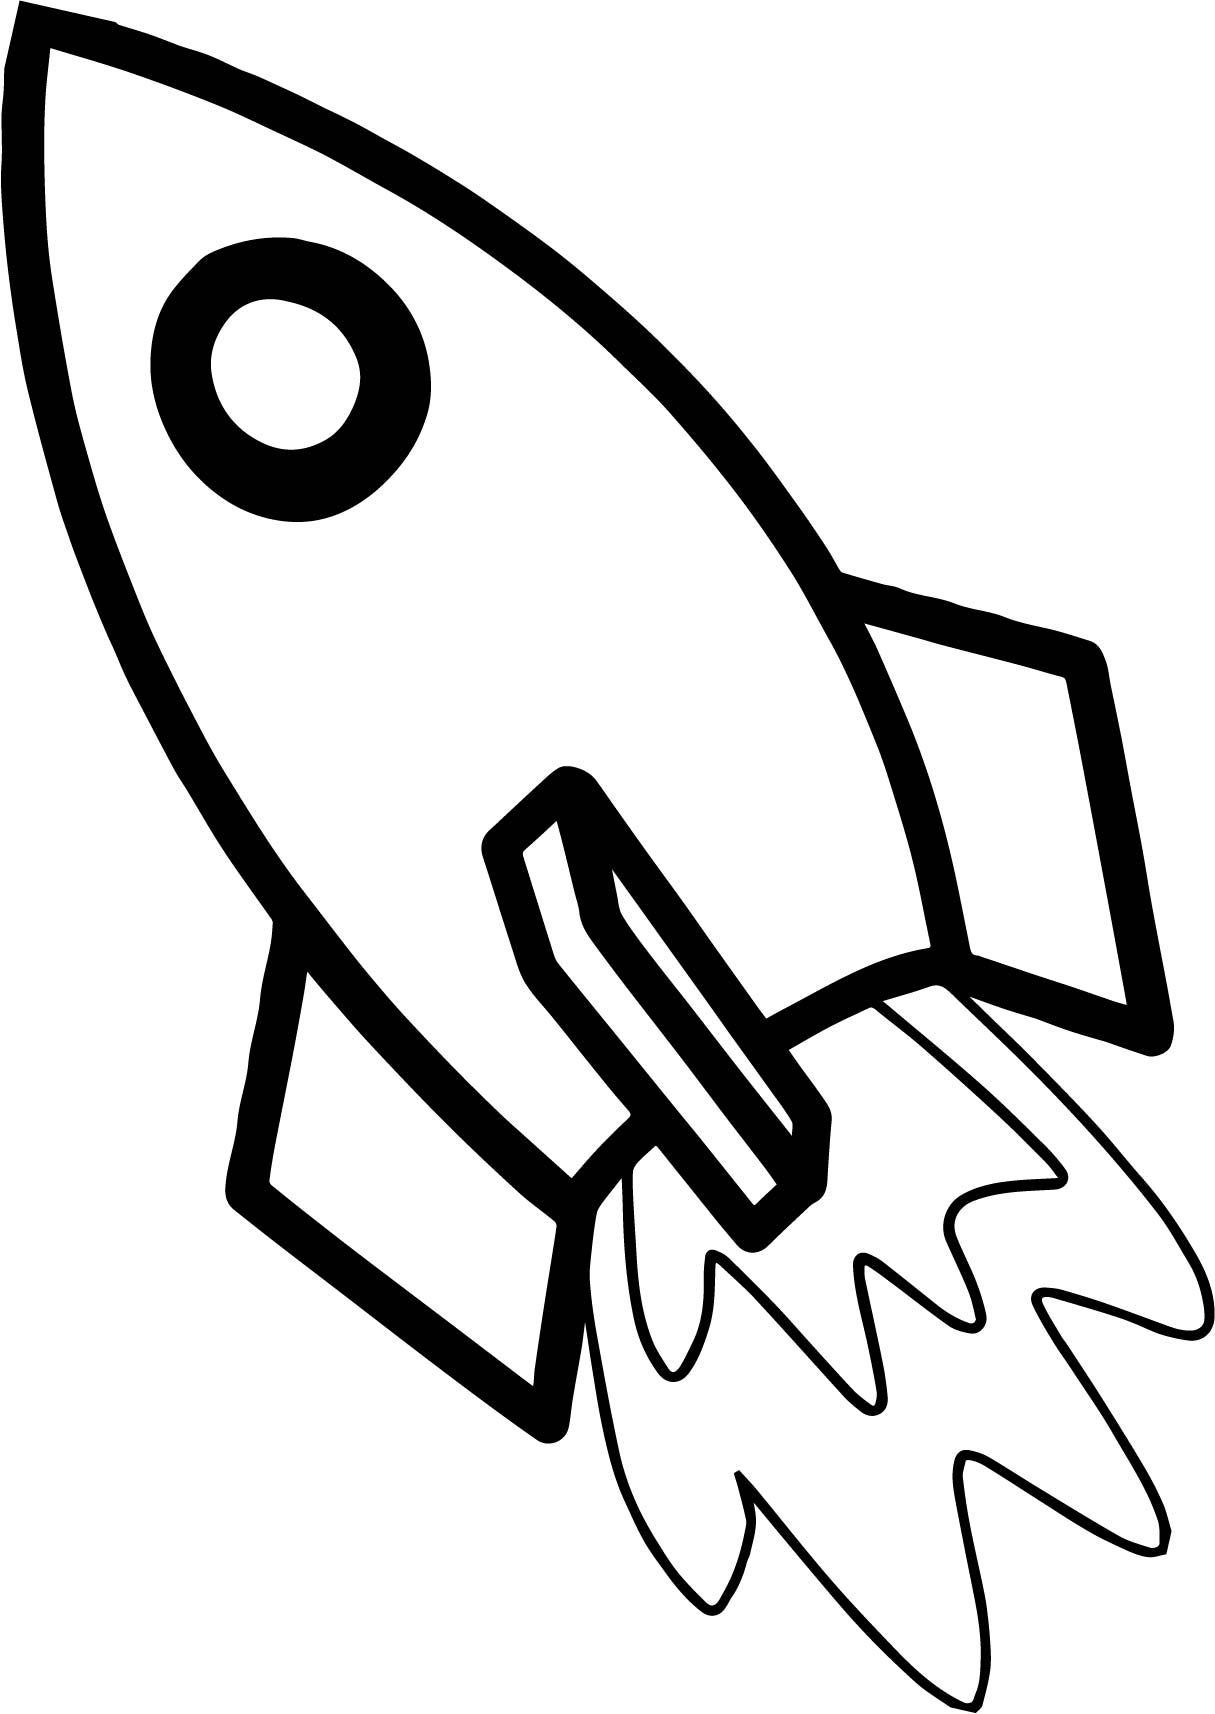 Astronaut Rocket Coloring Page Space Coloring Pages Coloring Book Pages Coloring Pages